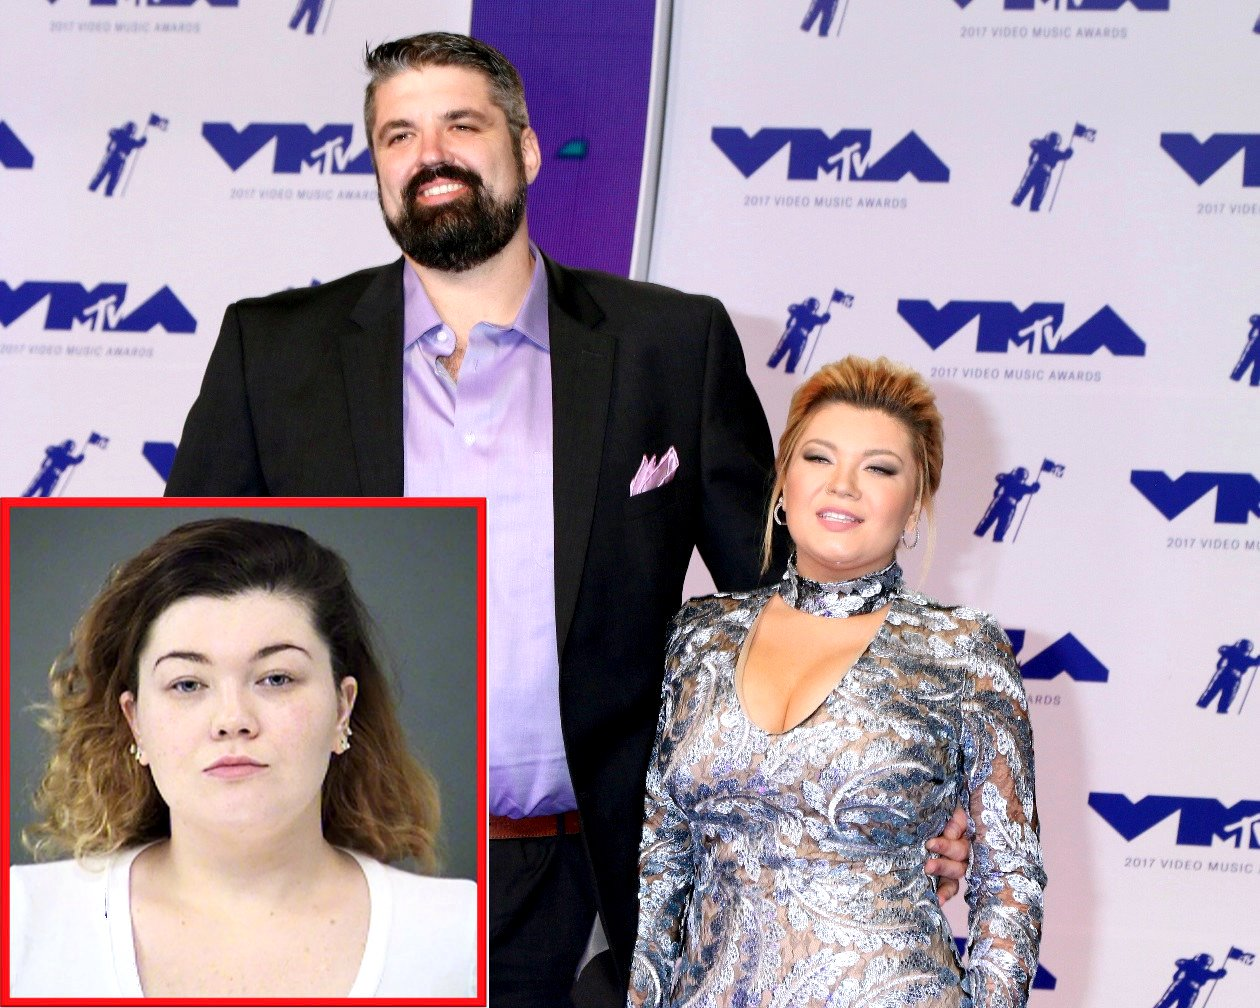 Teen Mom OG's Amber Portwood Arrested on Charges of Felony Domestic Battery, Boyfriend Andrew Glennon Accuses Her of Assault